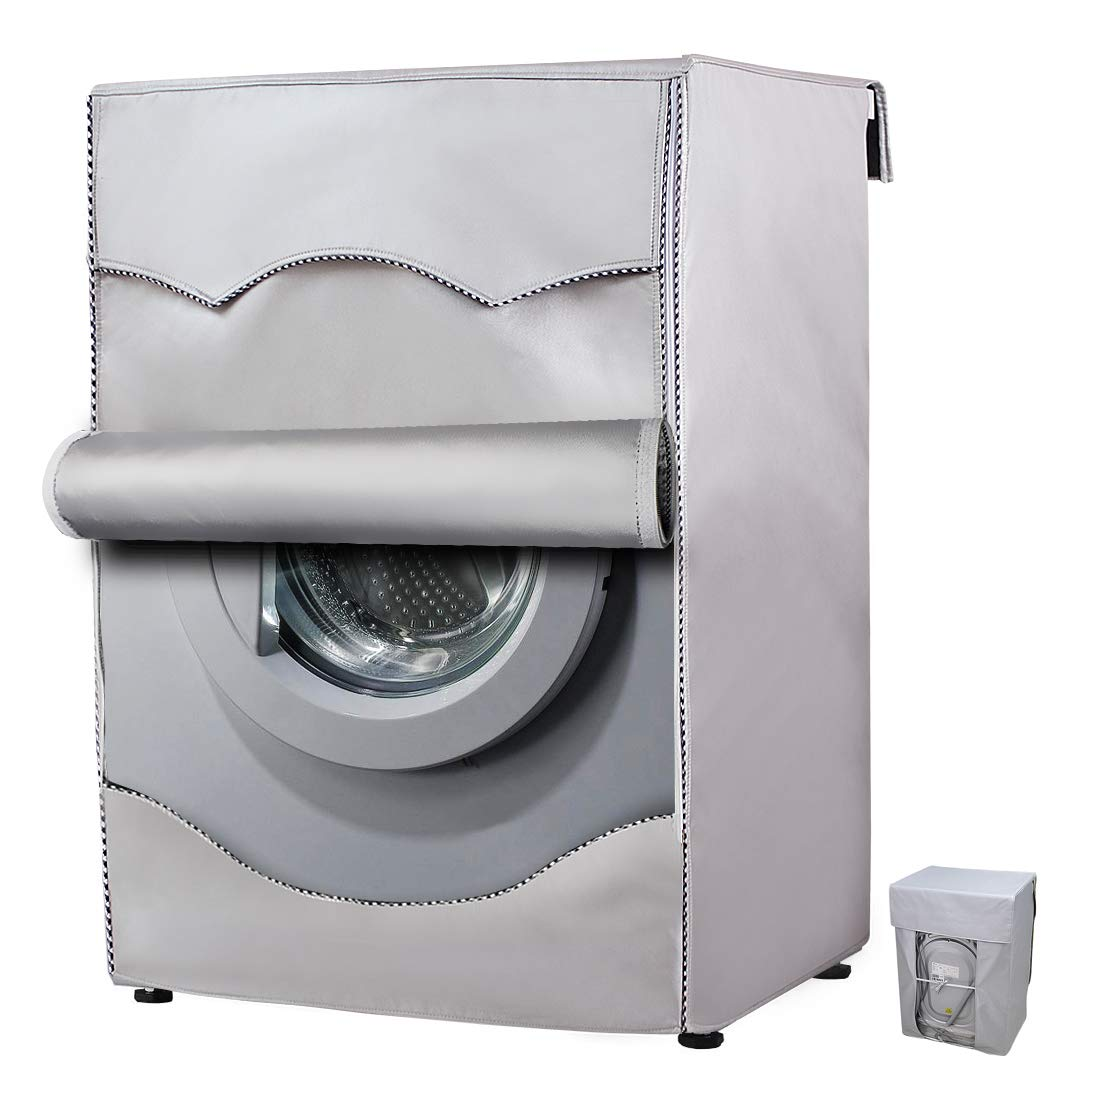 Washer/Dryer Cover for Front-Loading Machine Waterproof dustproof Thin (W27 D33 H39 in, No lace)